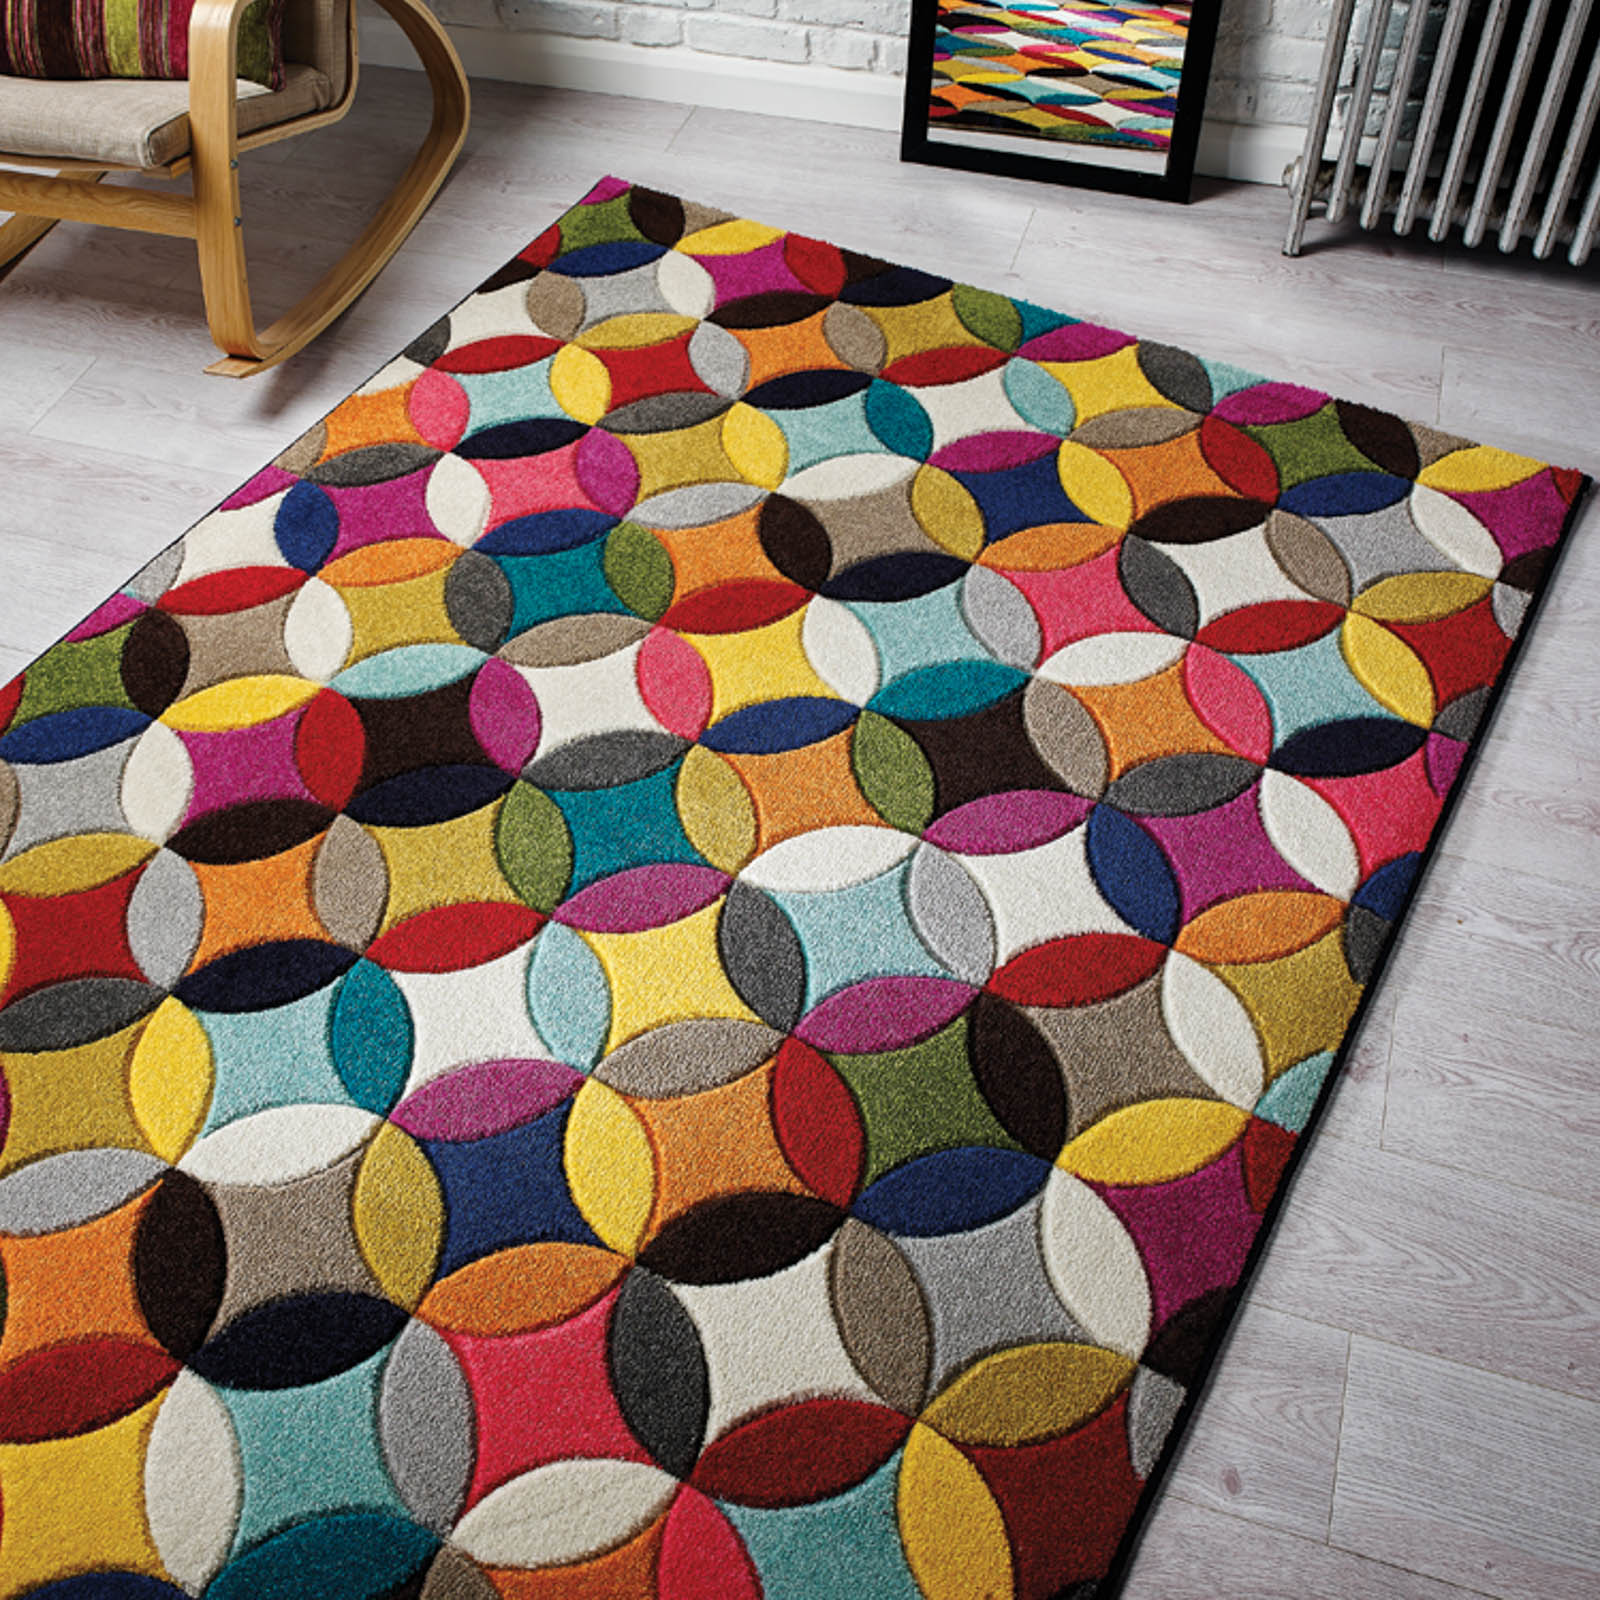 A multicoloured, circular design floor piece on a ligth grey coloured flooring